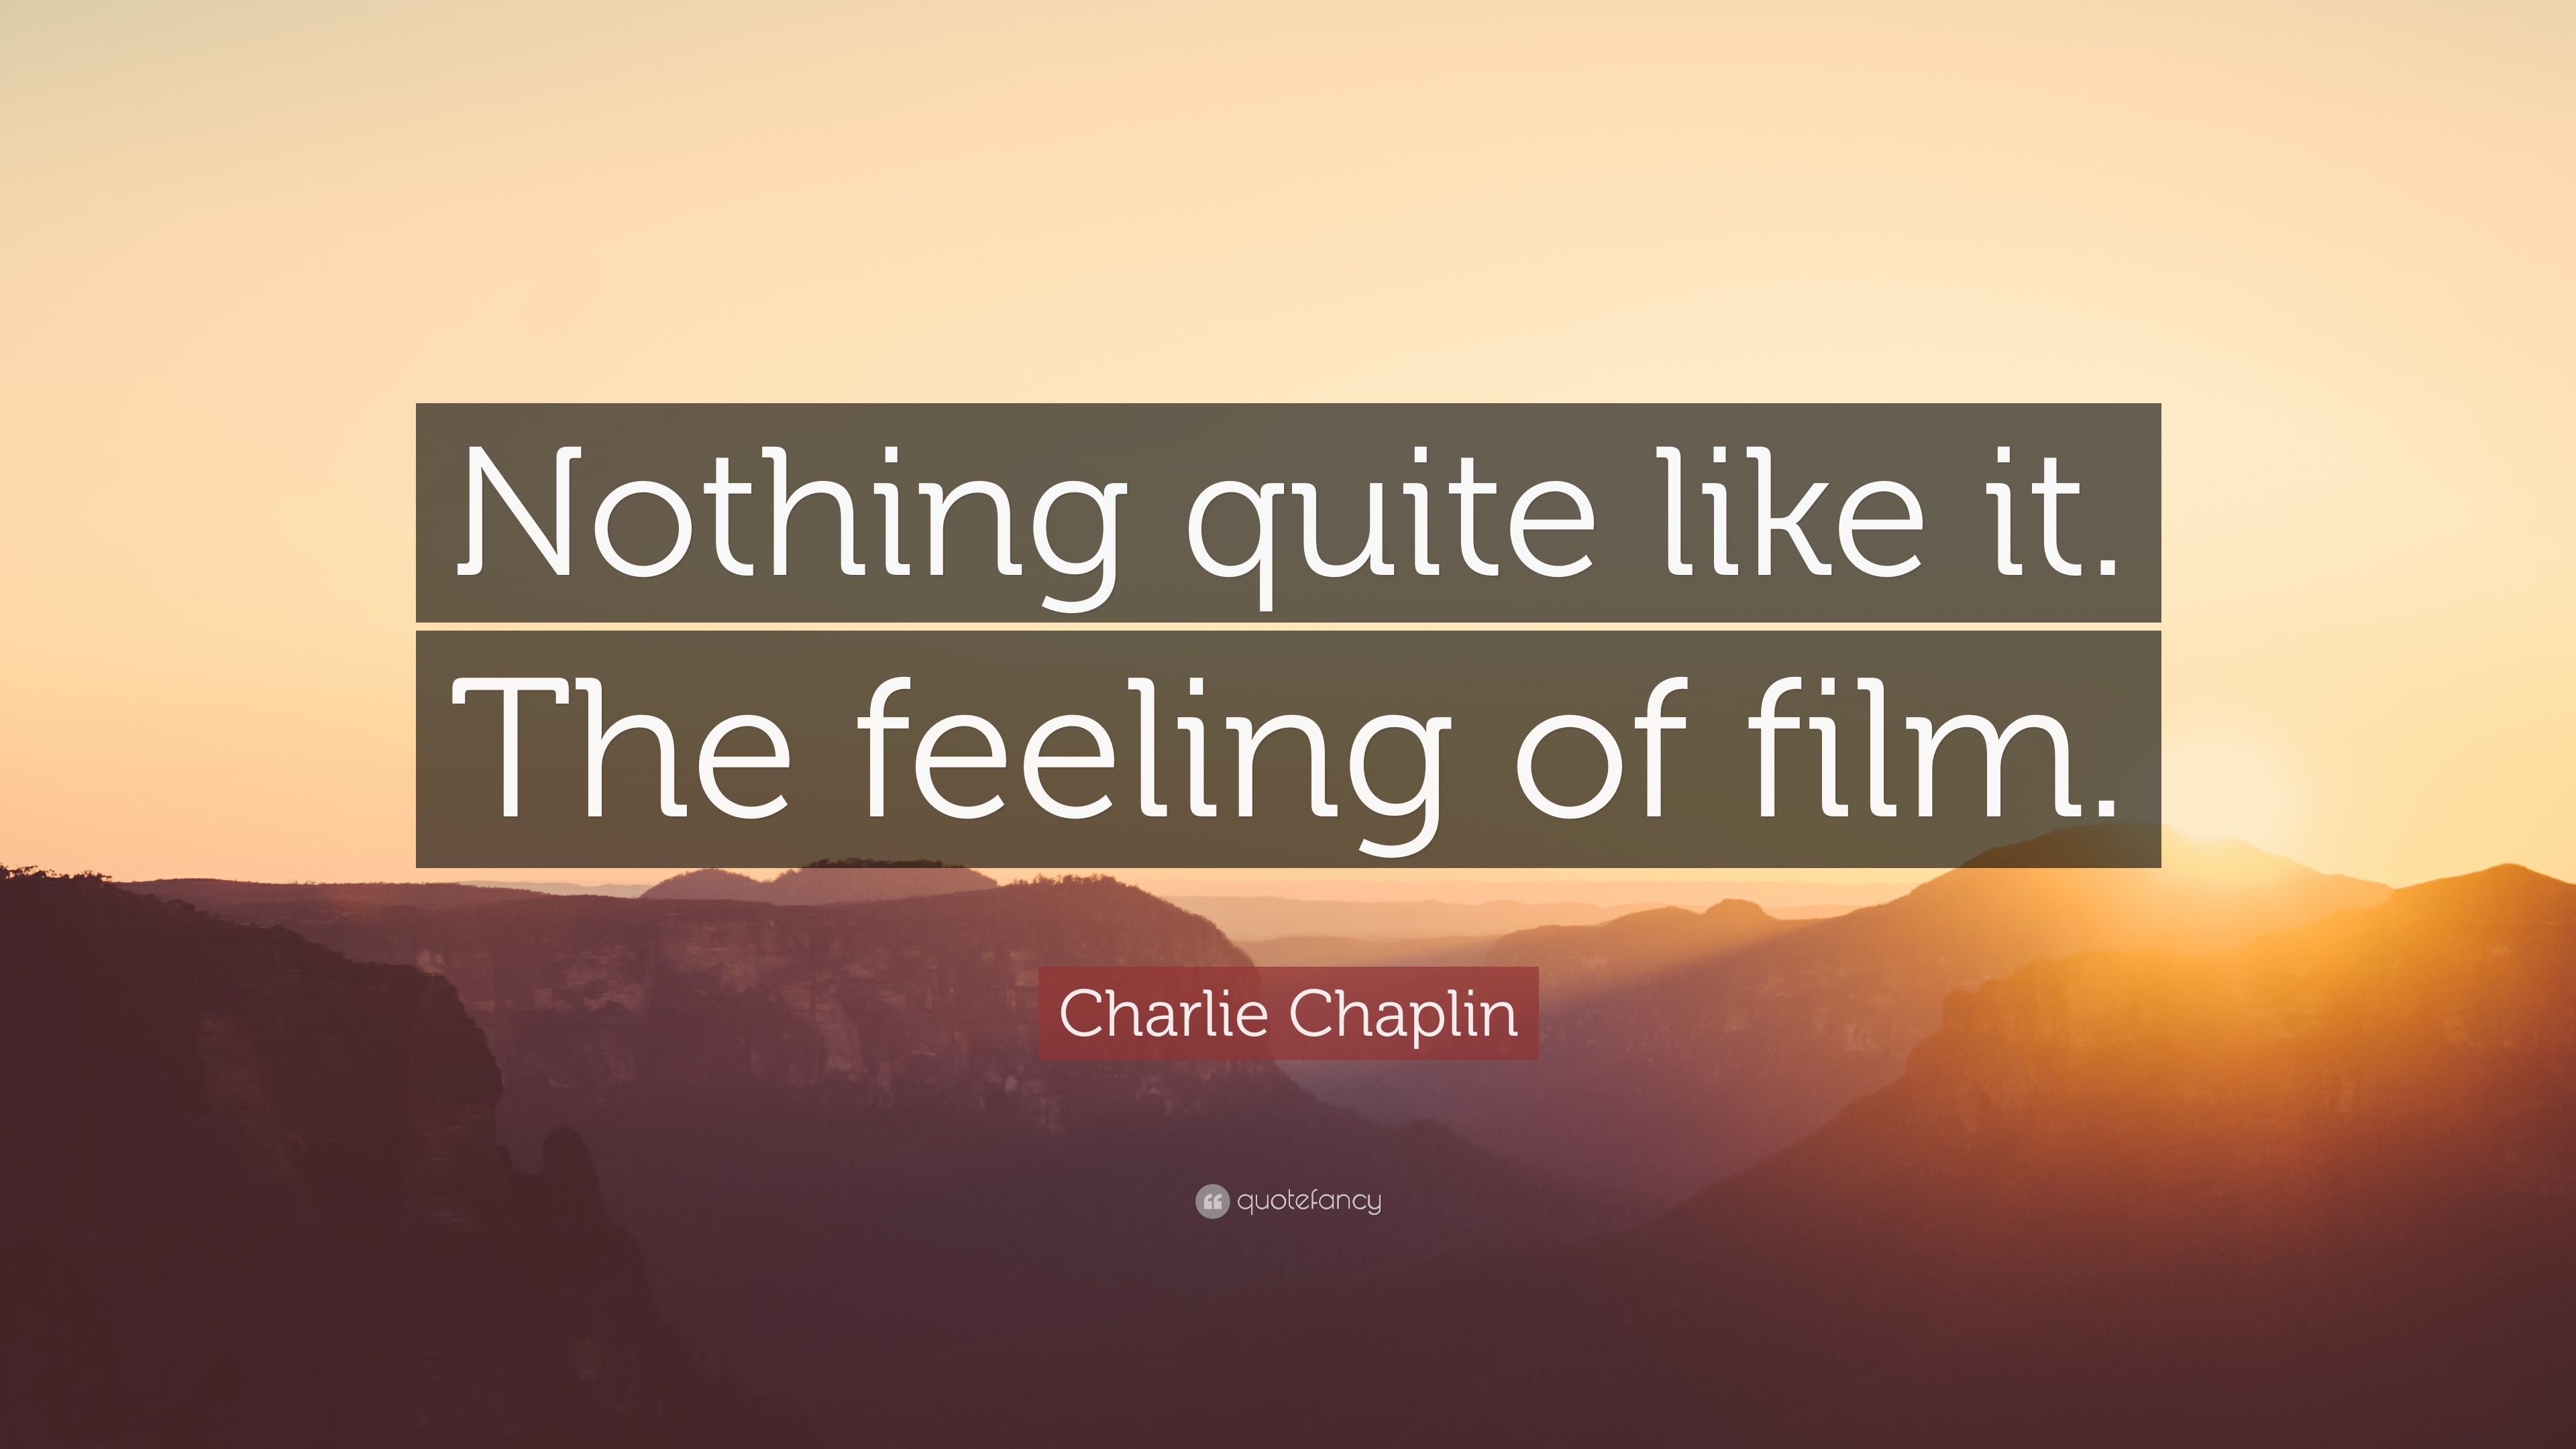 charlie chaplins bid for peace essay Charlie chaplin immigrant essay charlie chaplin immigrant essay, essays on peace like a river by leif enger, research papers brain fingerprinting.